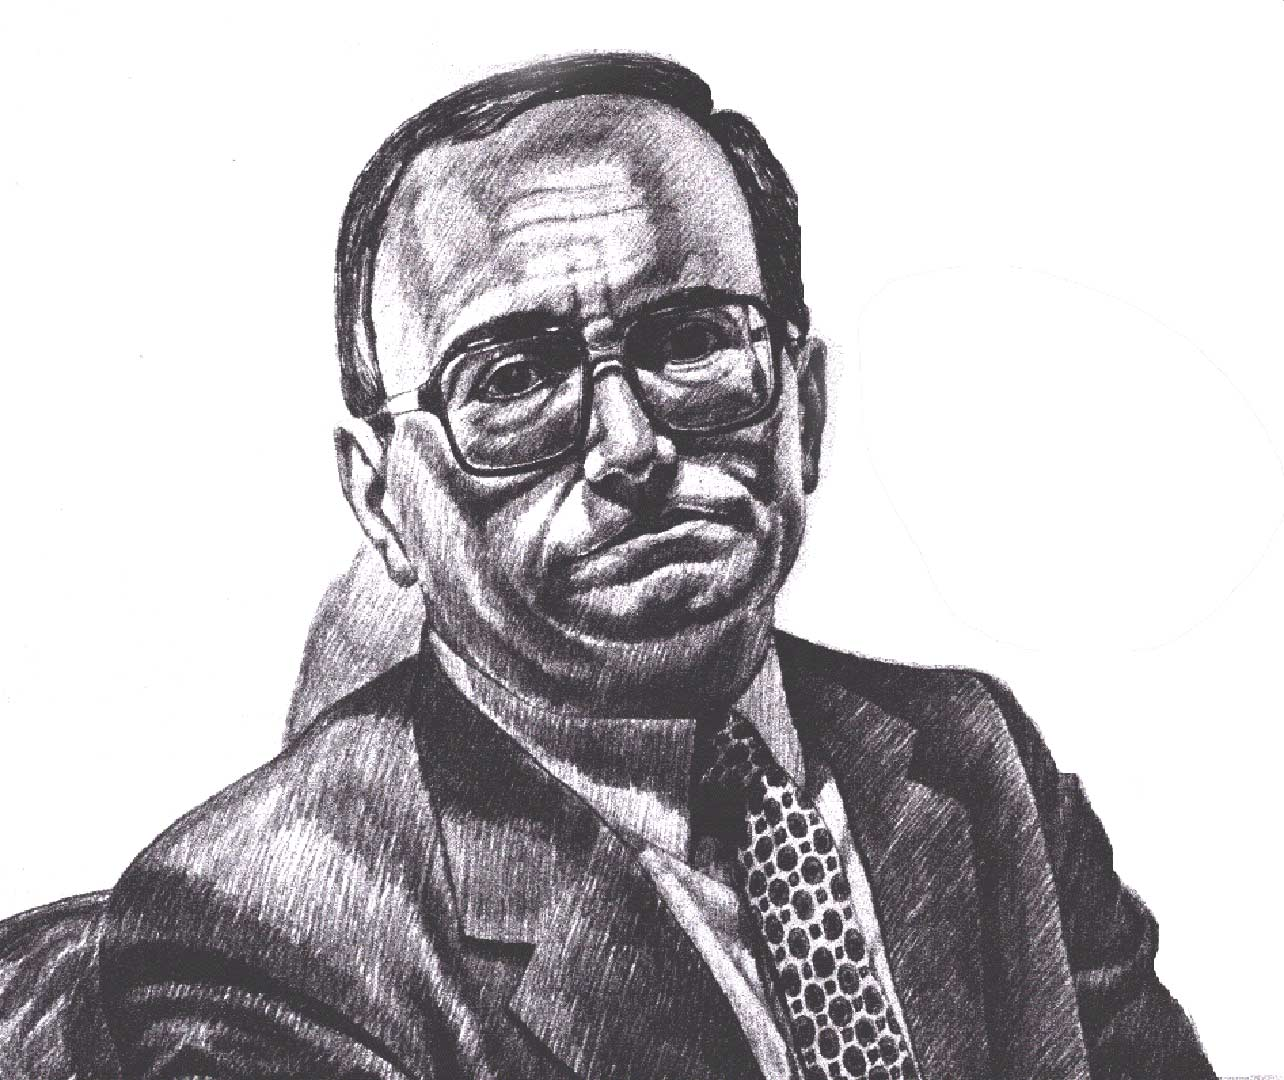 1989 Portrait of President of Brooklyn College Pencil Dimensions Unknown